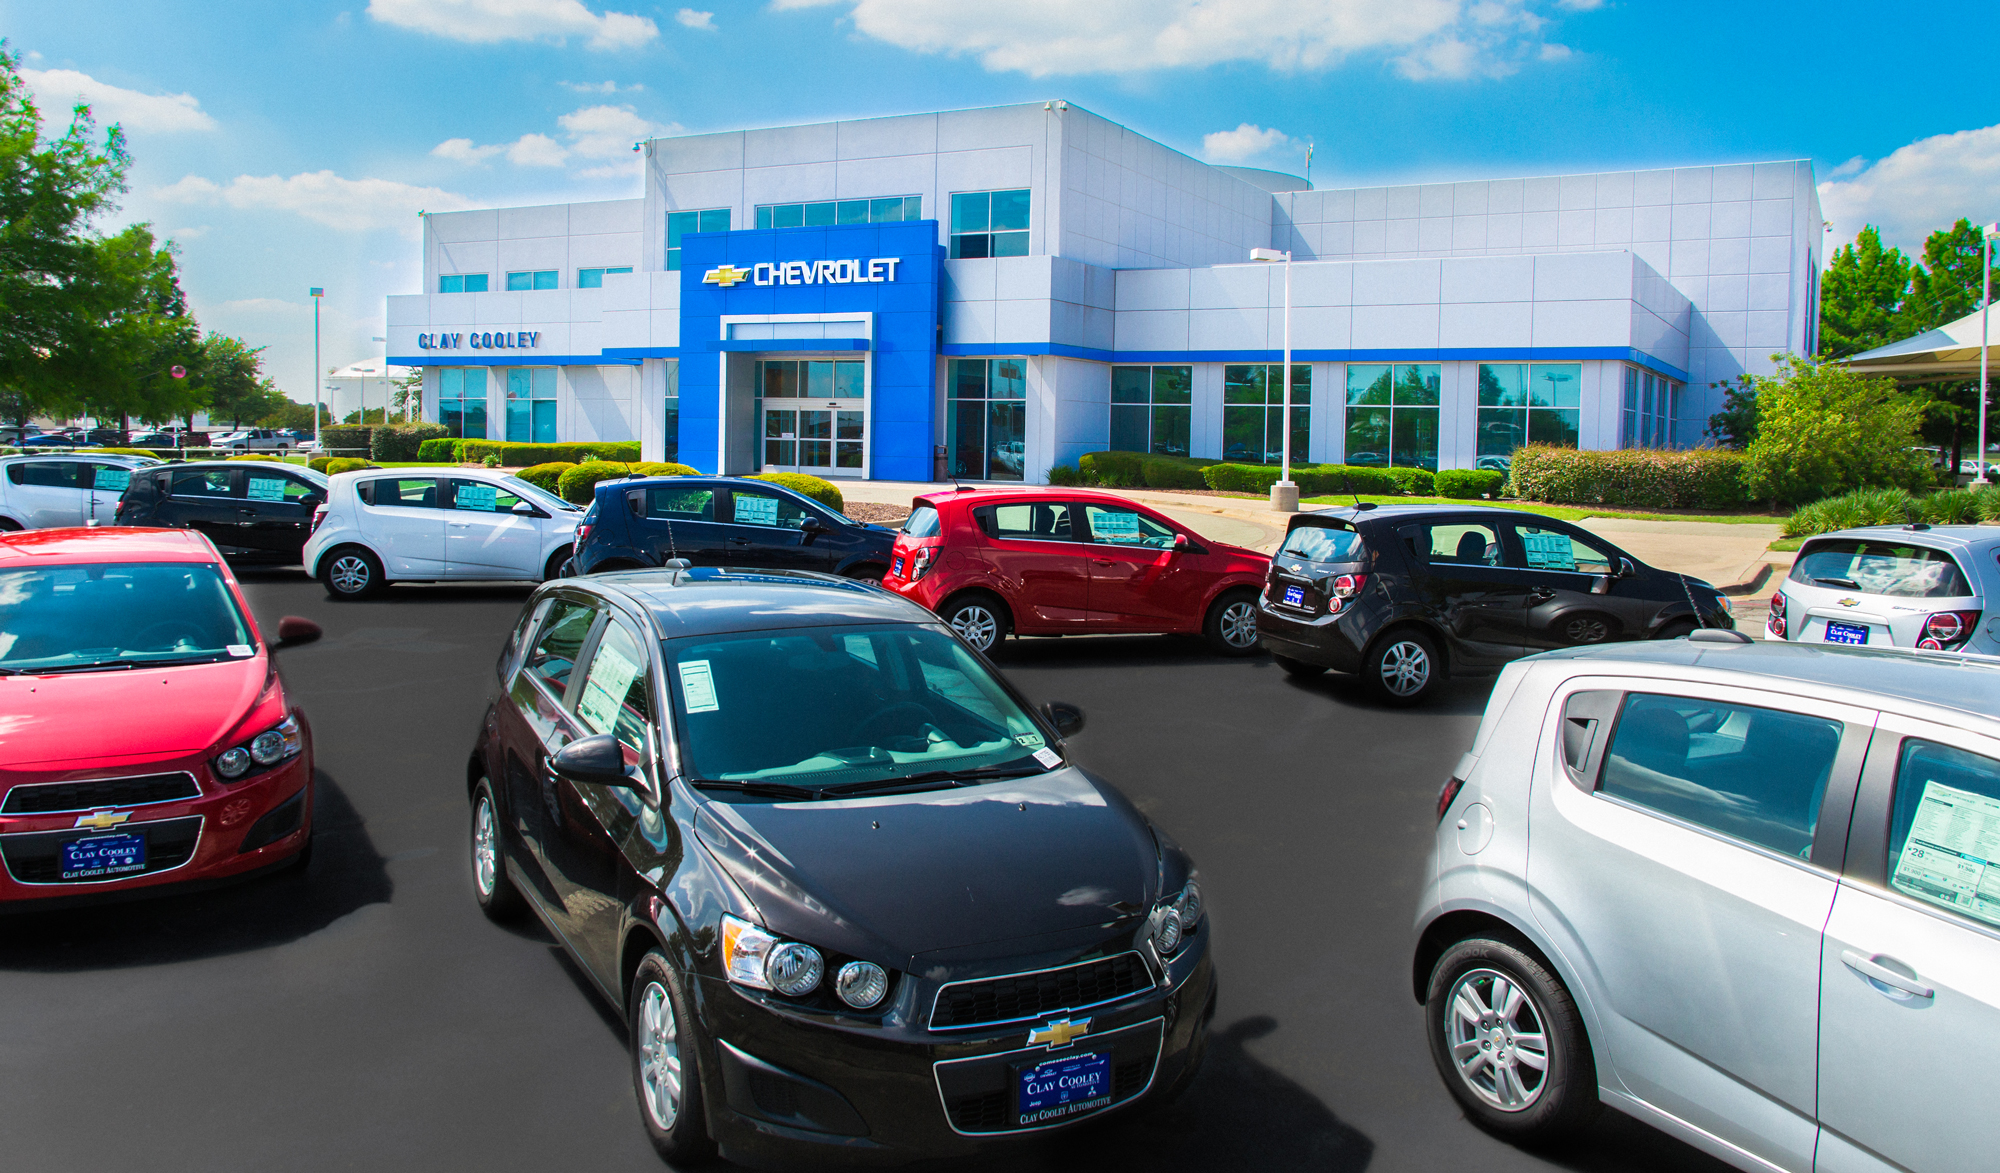 Pushing The Needle In Volume Clay Cooley Chevrolet | DFW DEALERSHIPS | Home